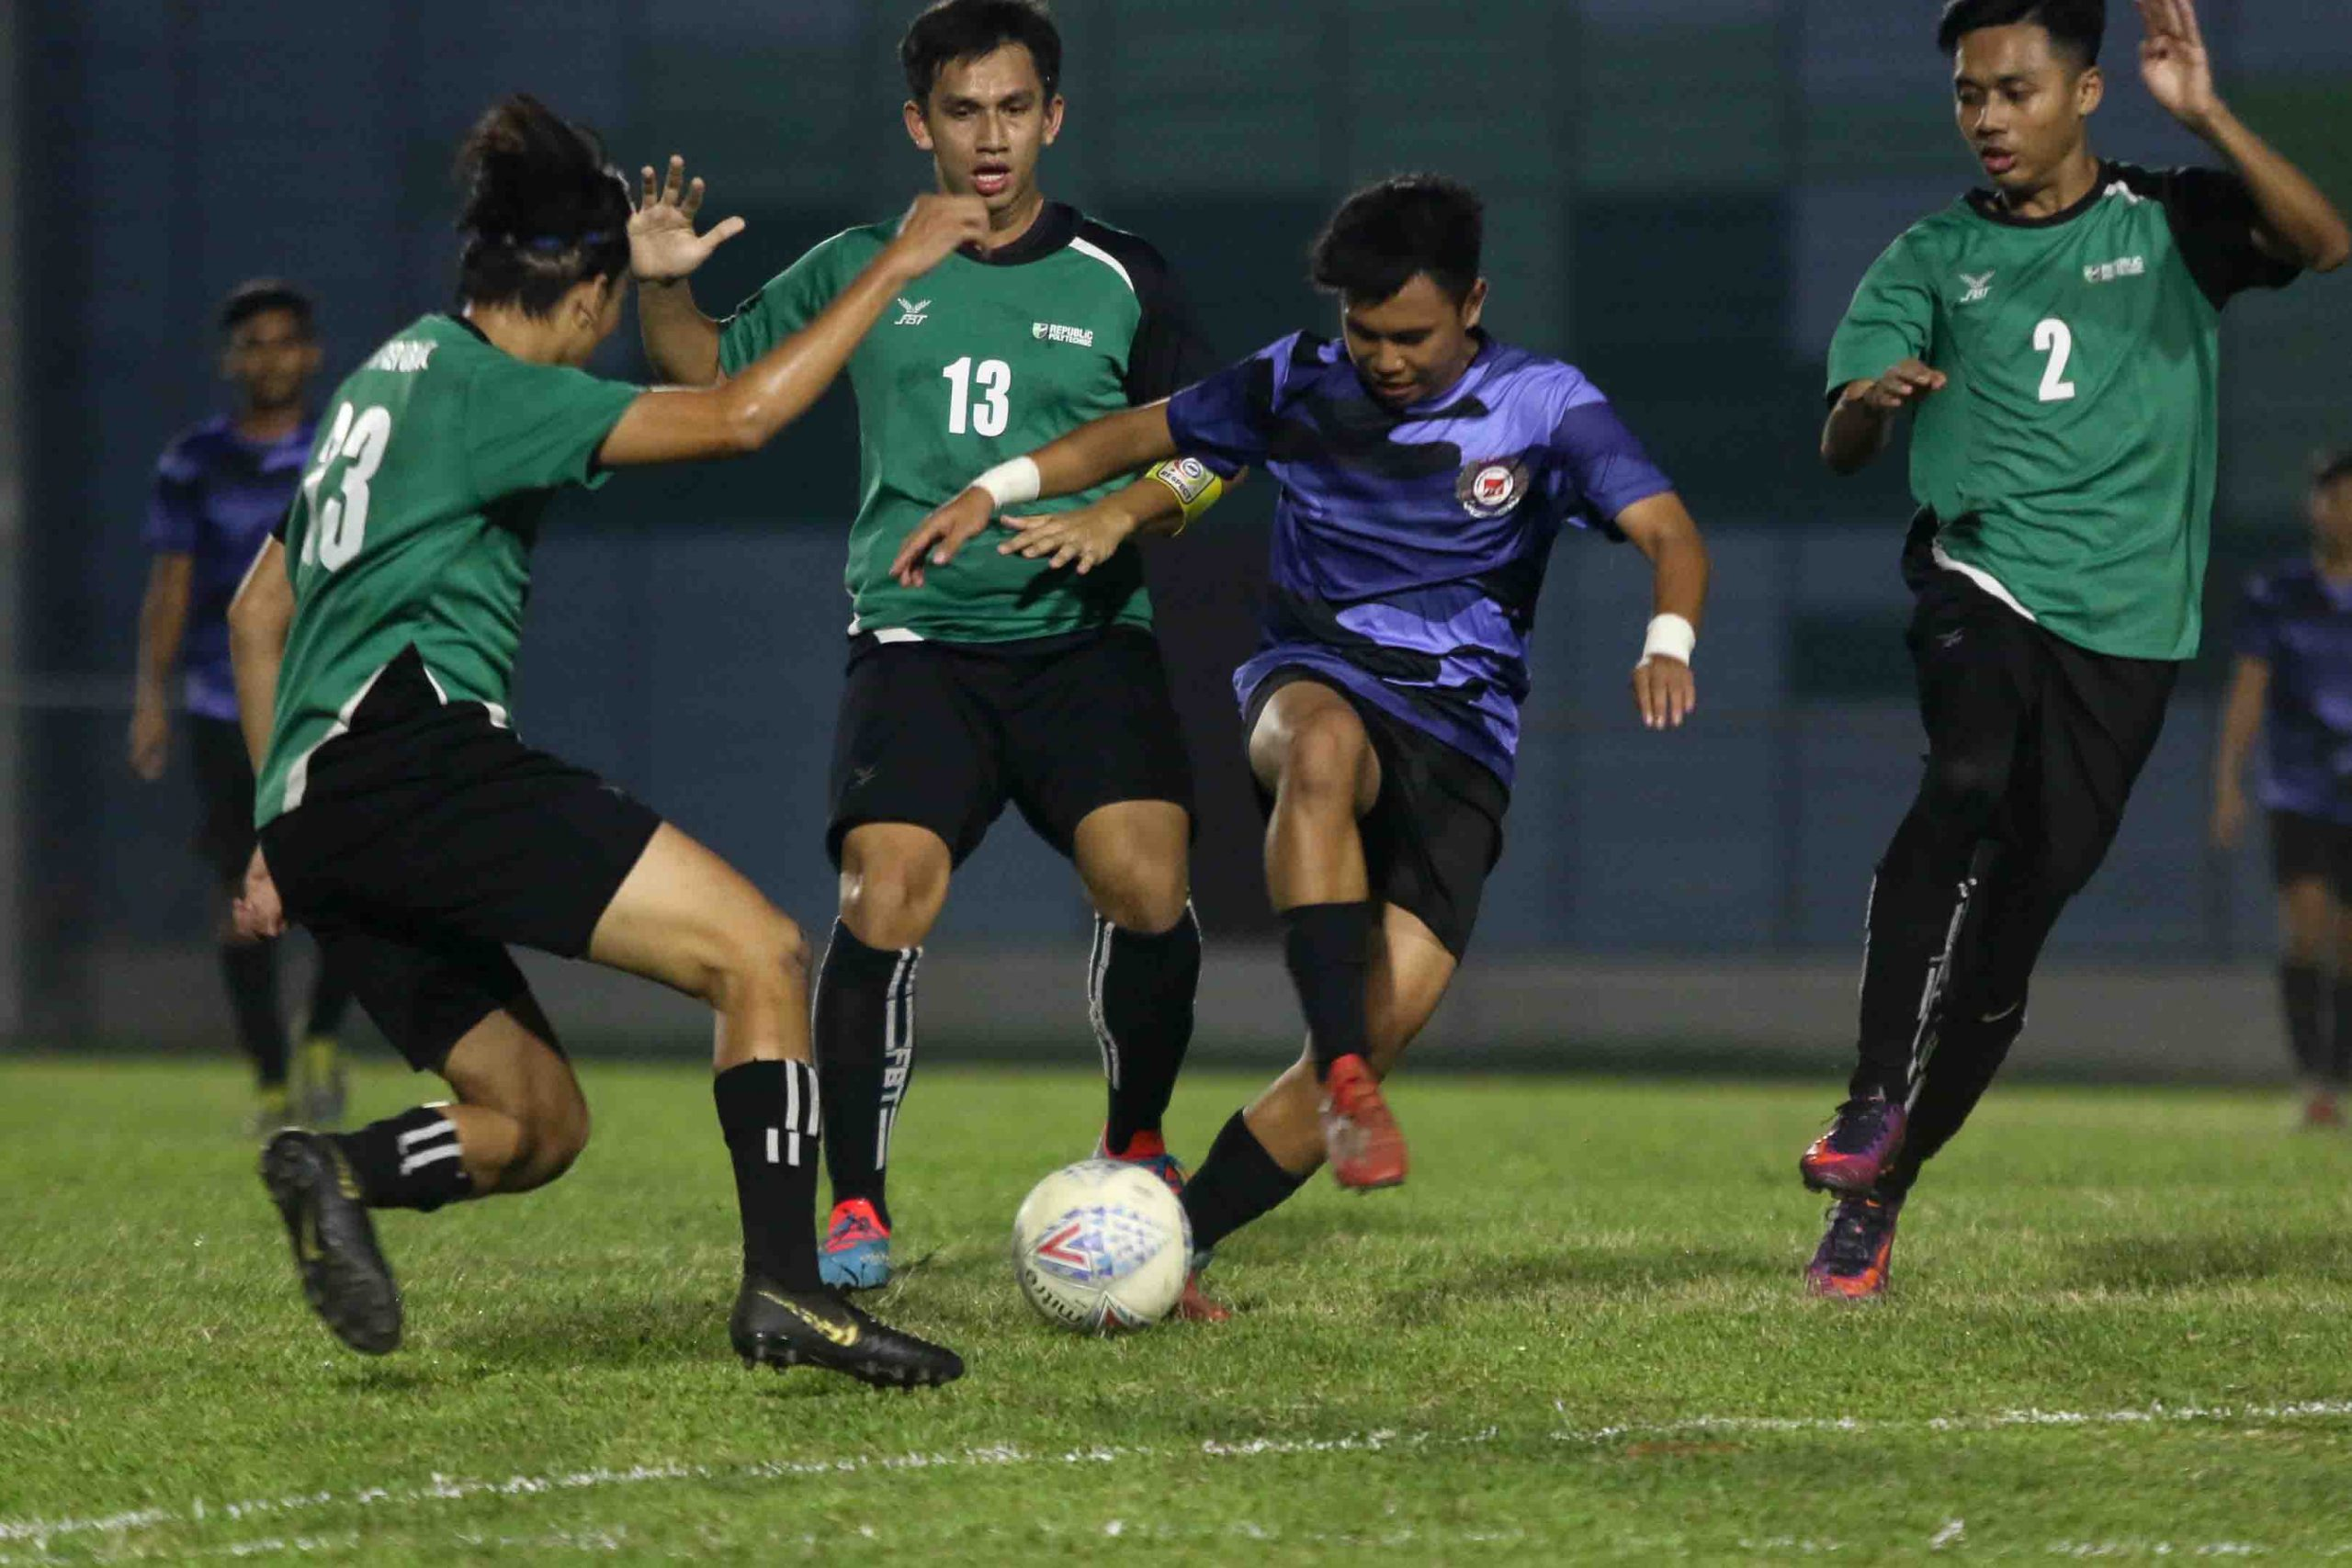 Muhd Azizi B Rahman (ITE #7) trying to dribble his way through a crowded RP defence. (Photo 1 © Clara Lau/Red Sports)